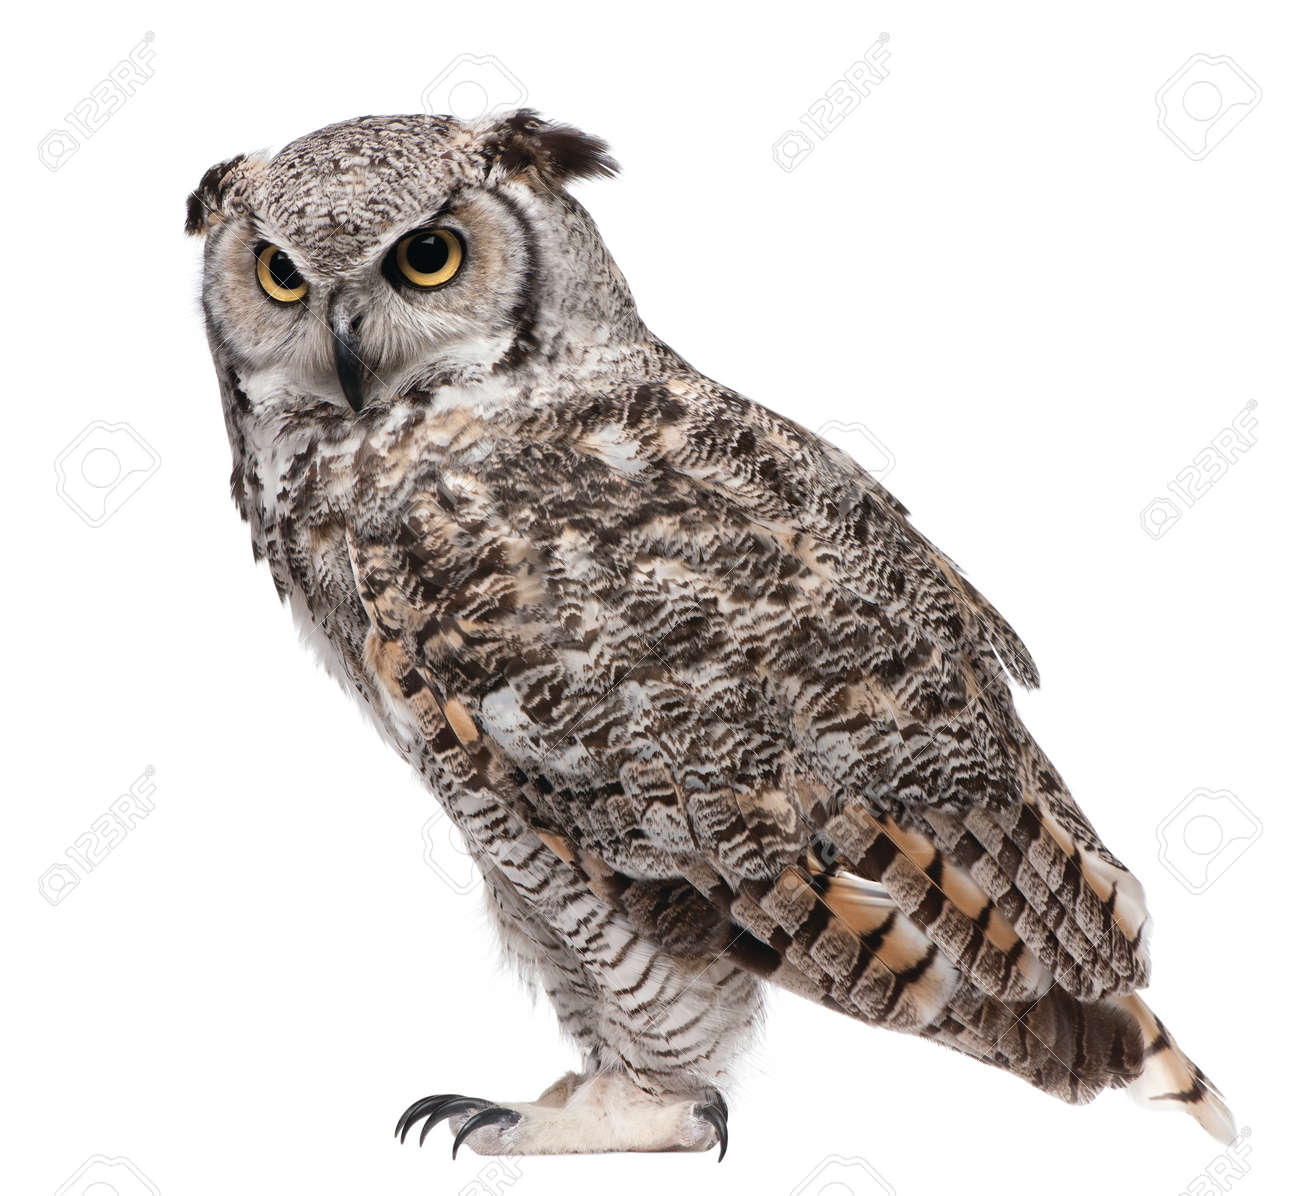 great horned owl isolated on white background - 115545943